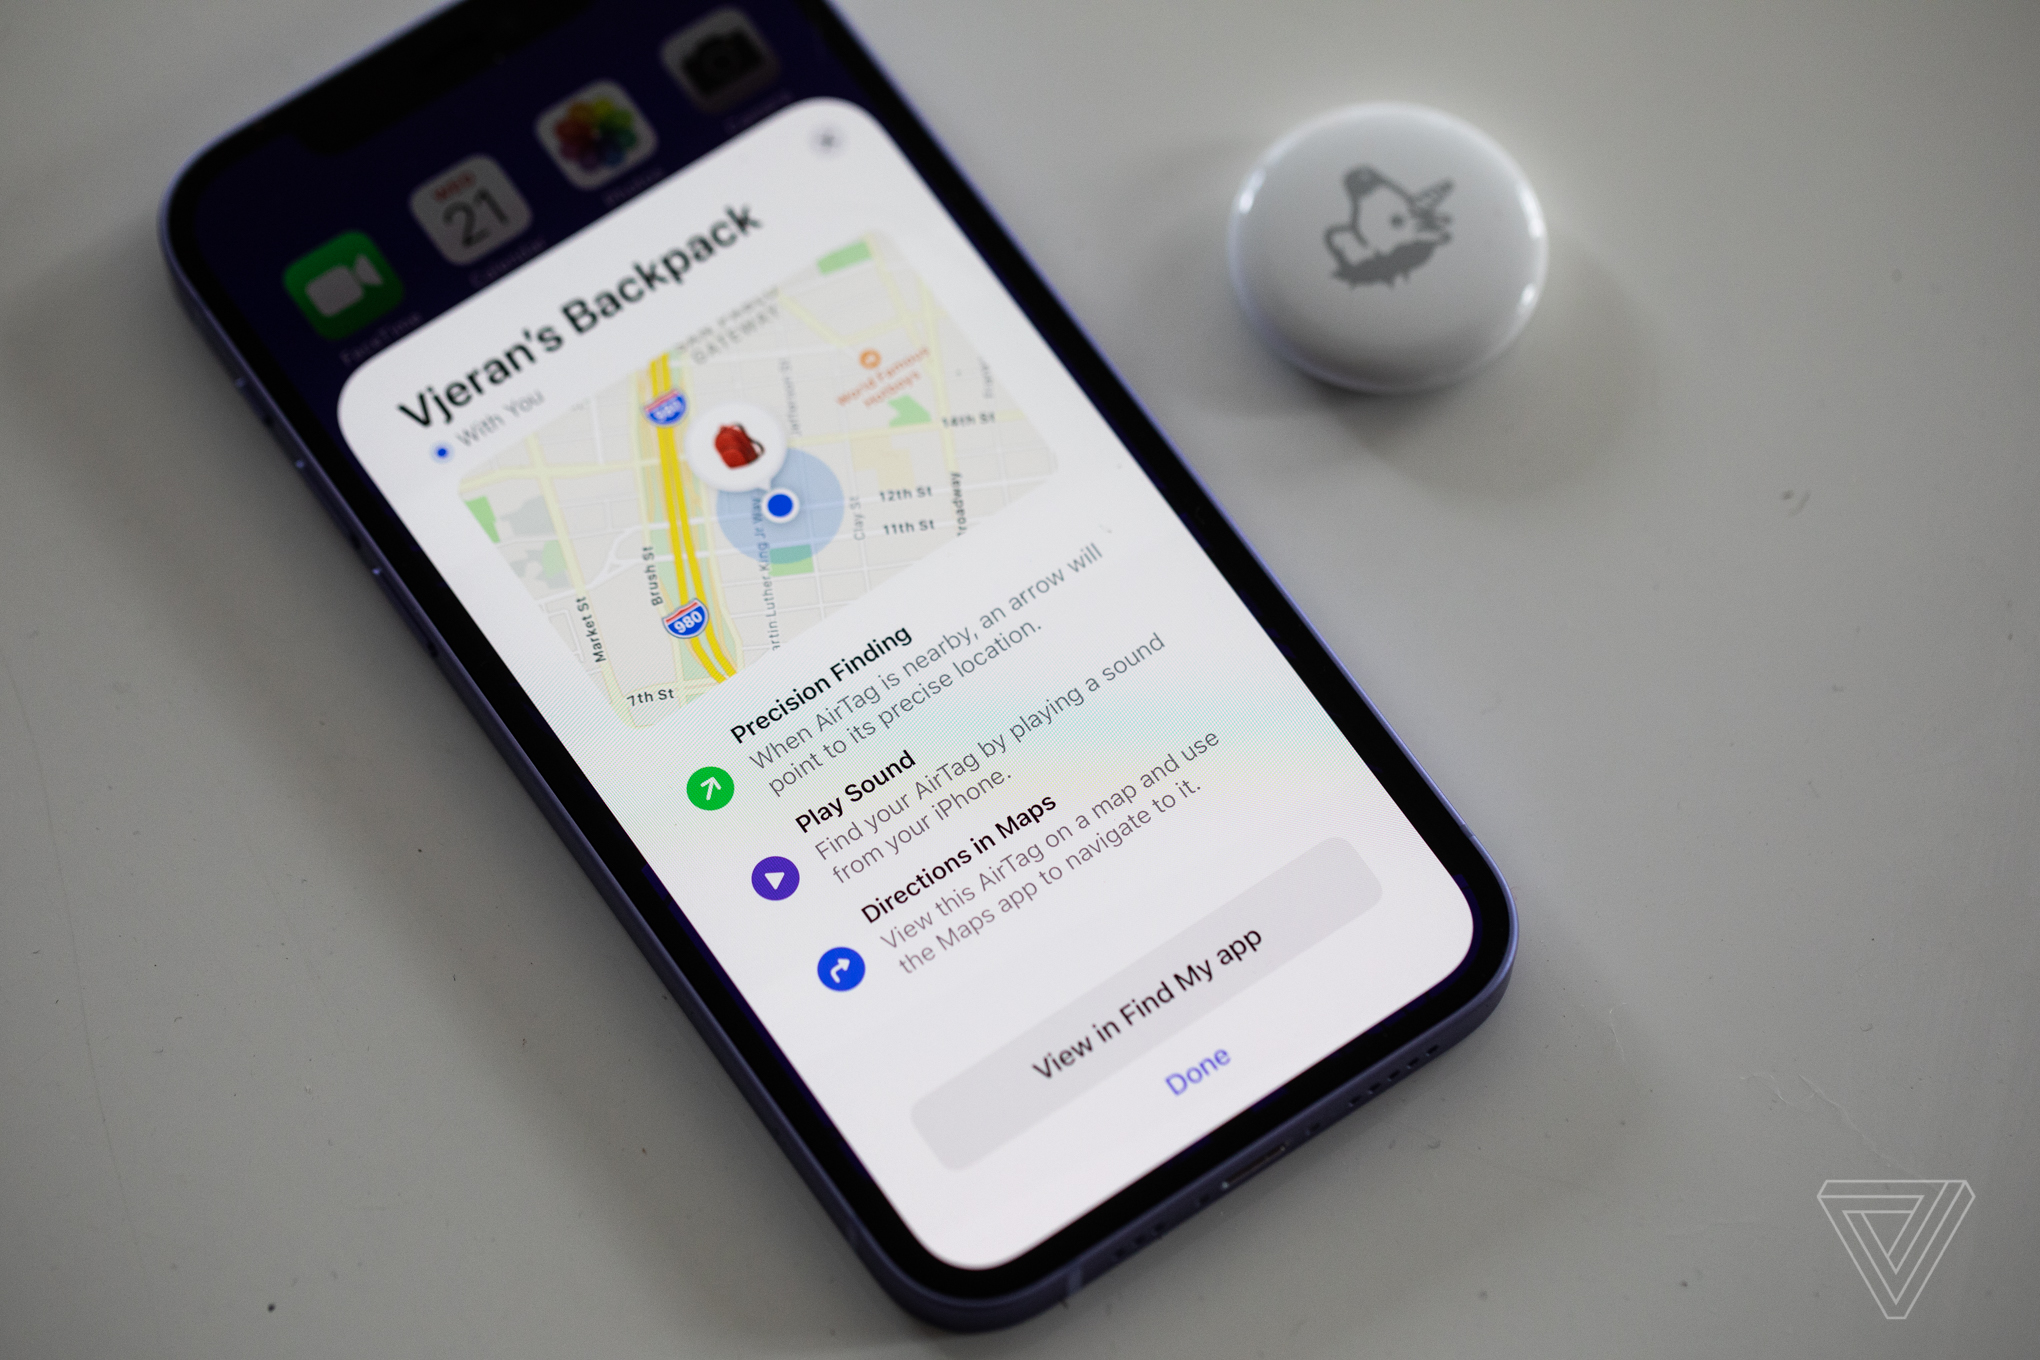 An AirTag and the Find My app